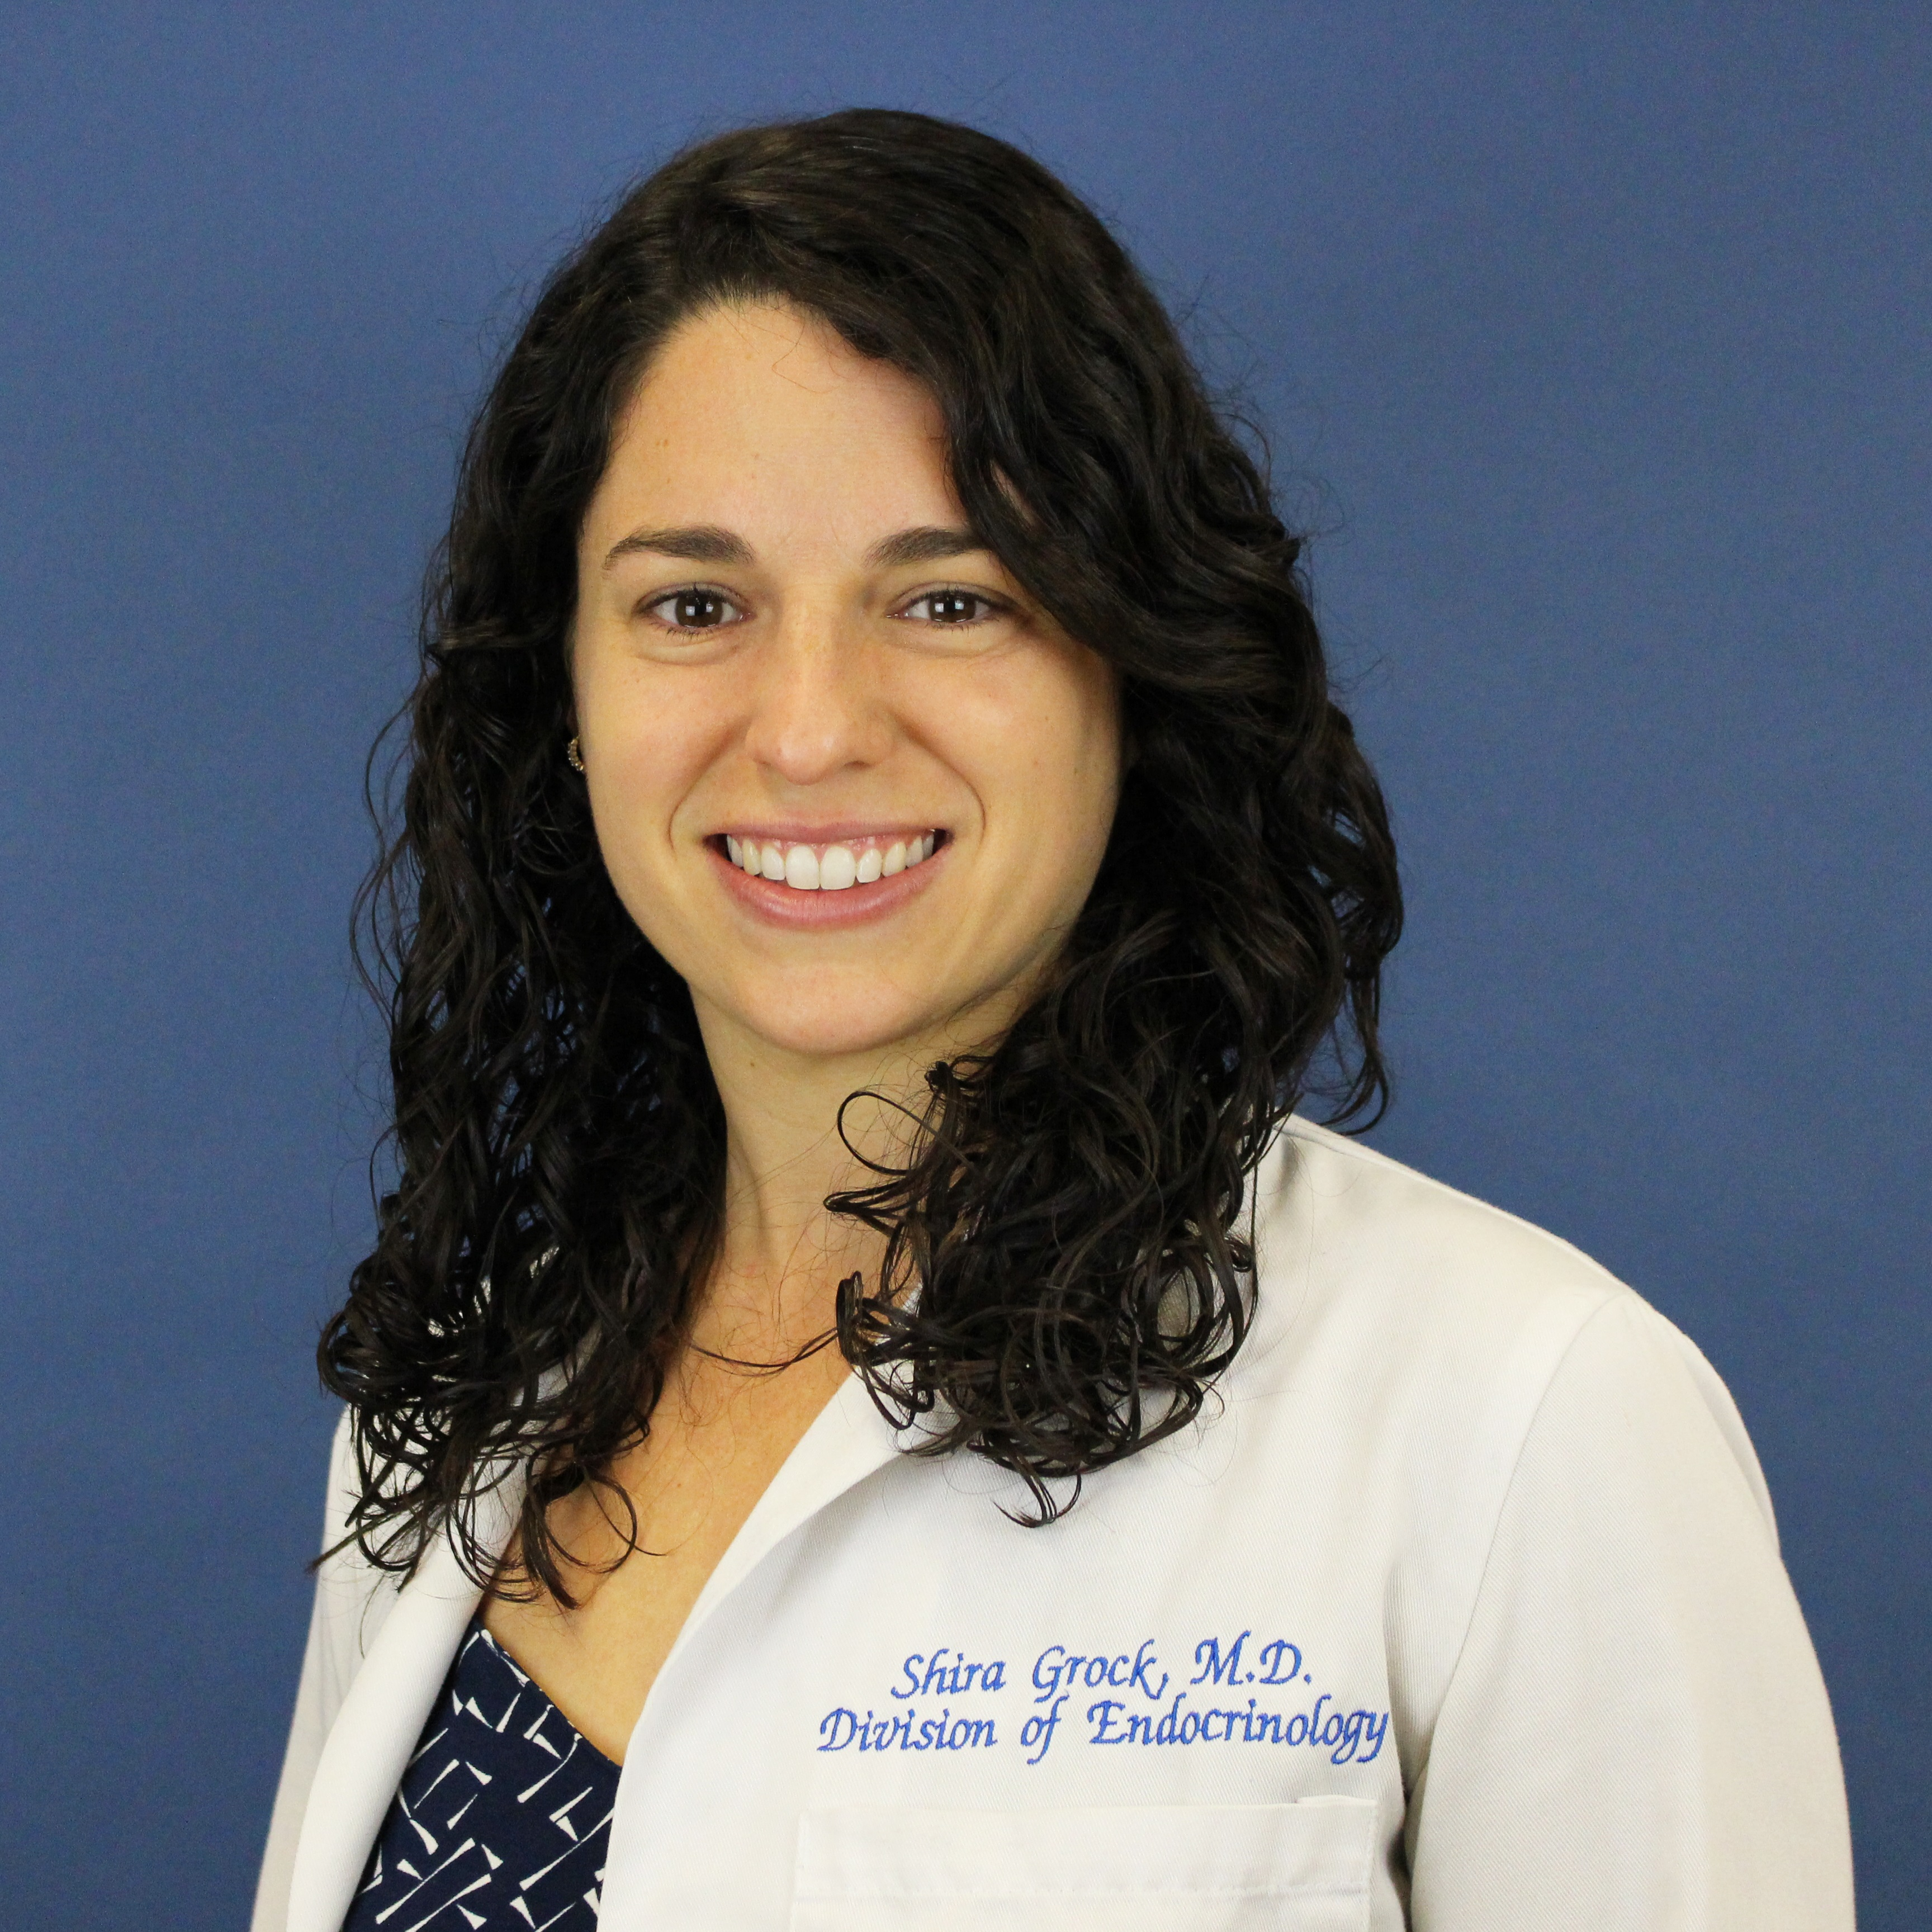 Shira Grock, MD : Medicine, Endocrinology - Diabetes and